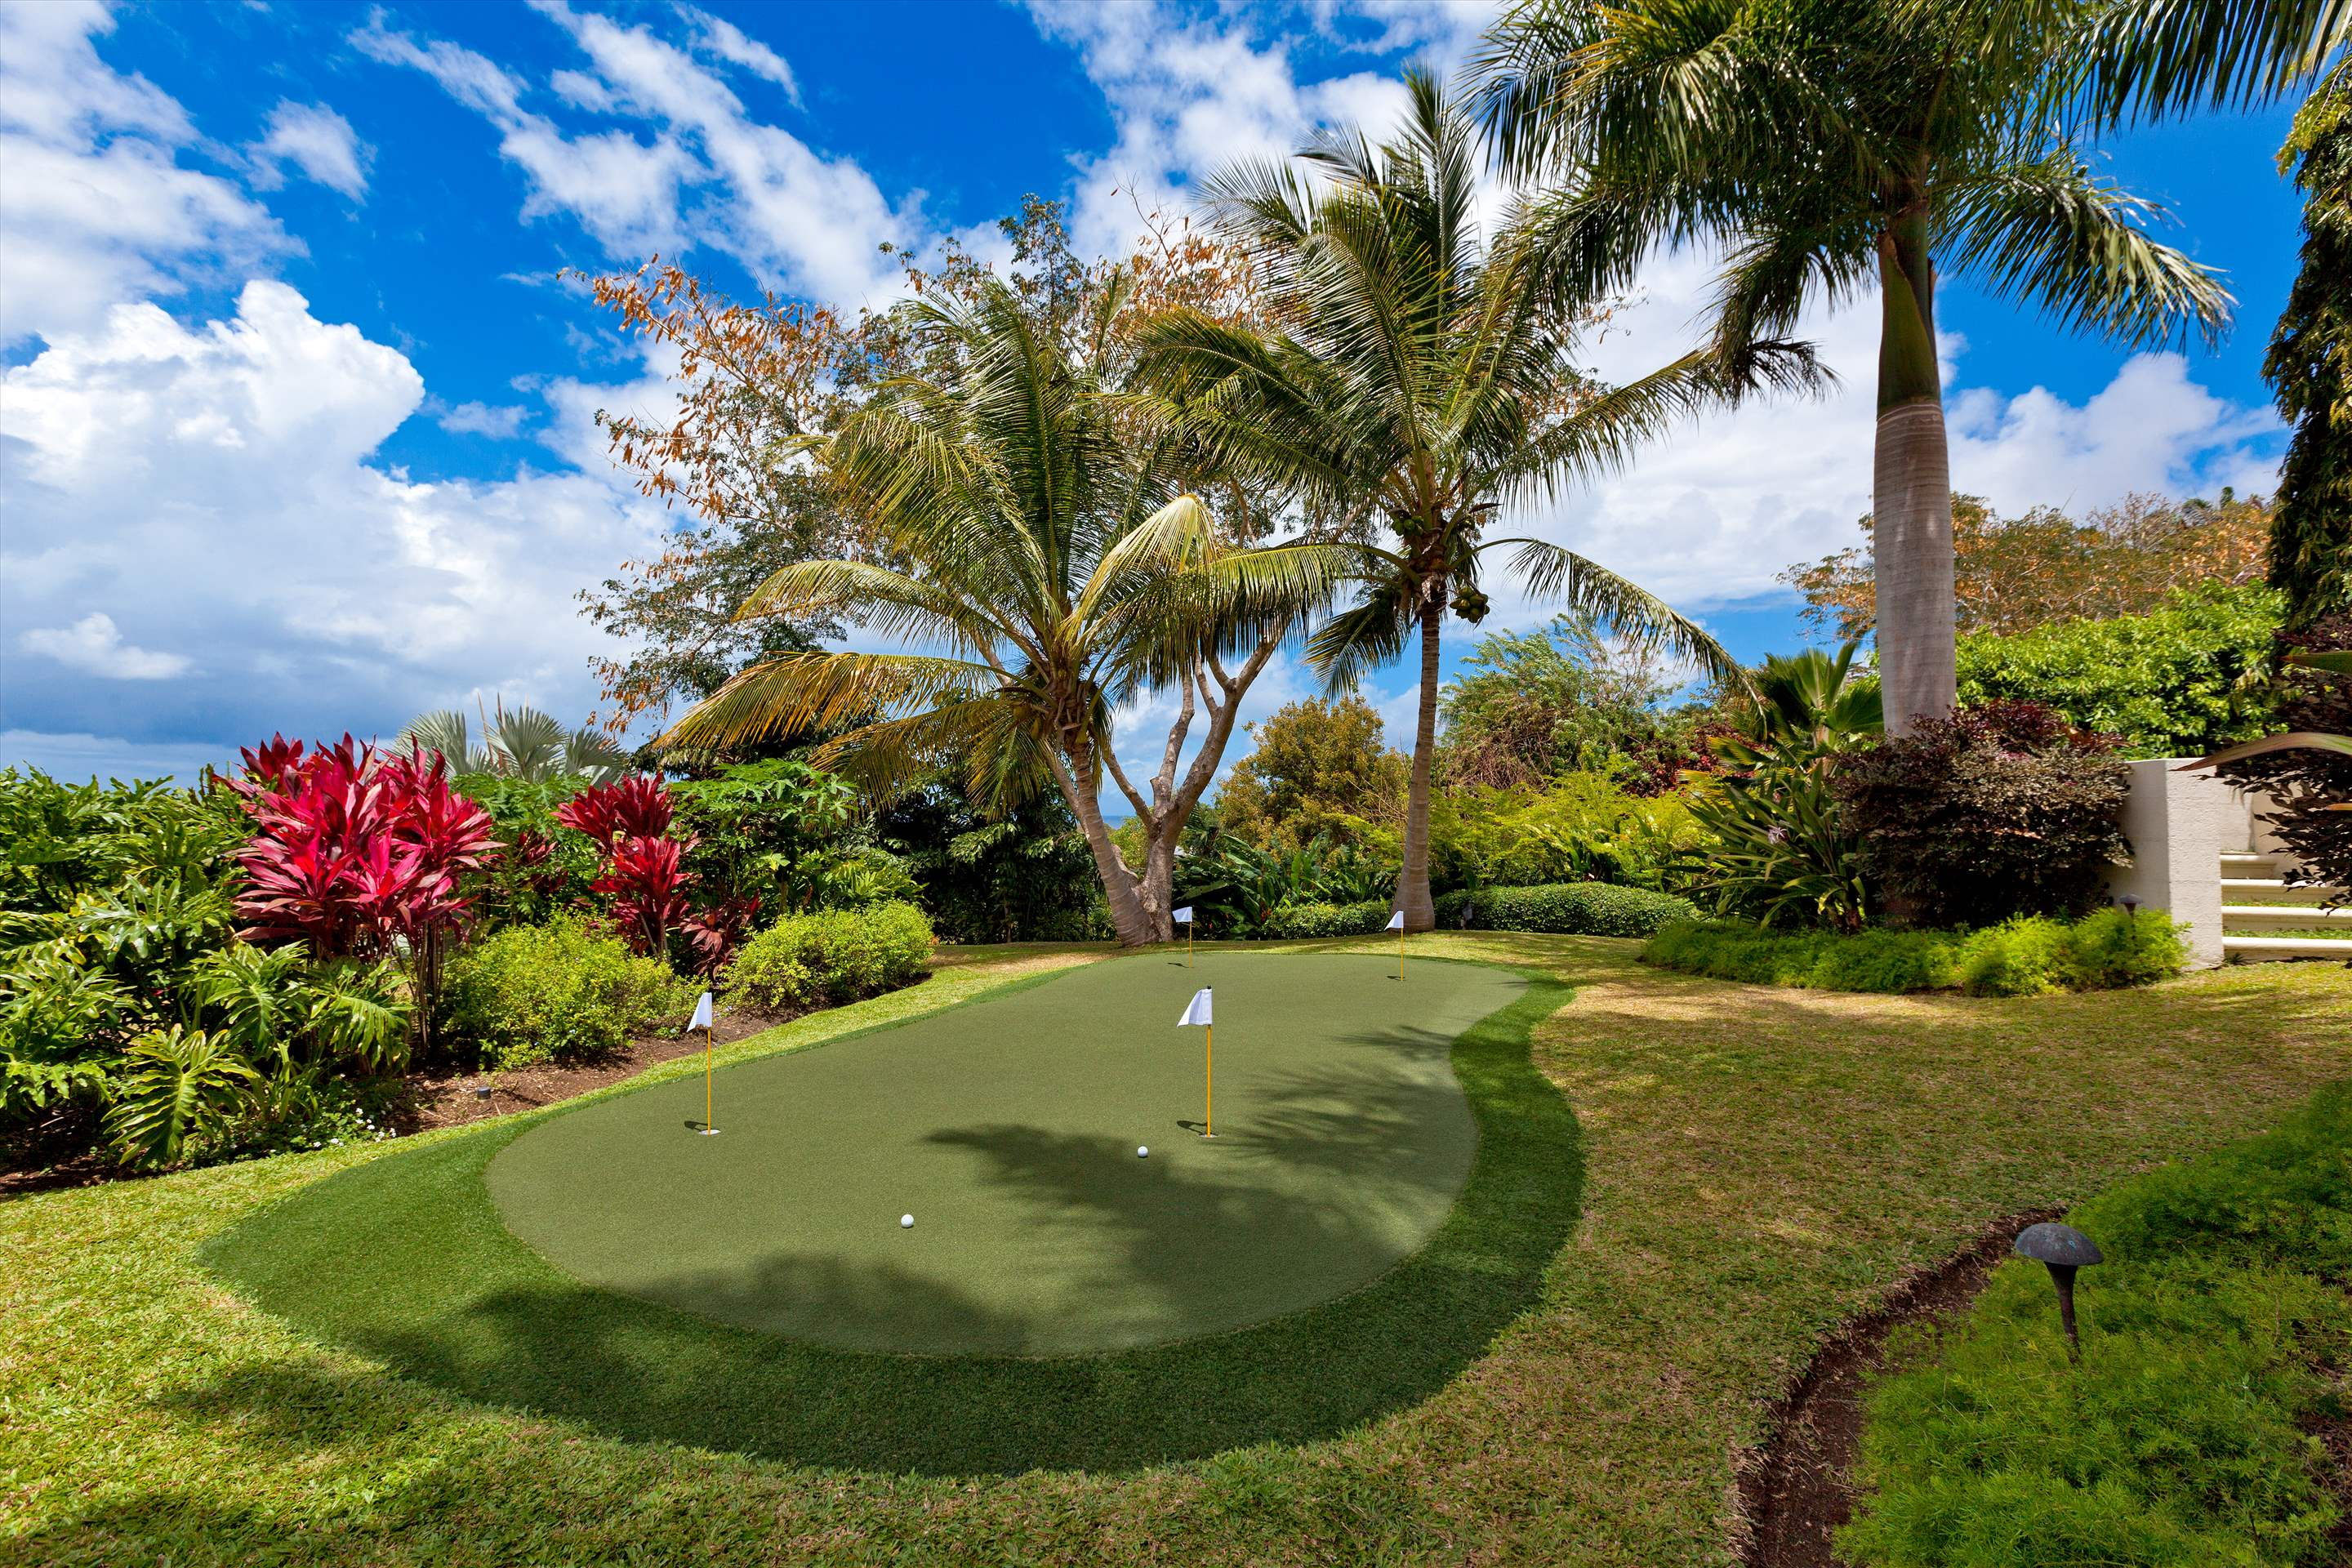 Illusion, Four Bedroom Rate, 4 bedroom villa in St. James & West Coast, Barbados Photo #11